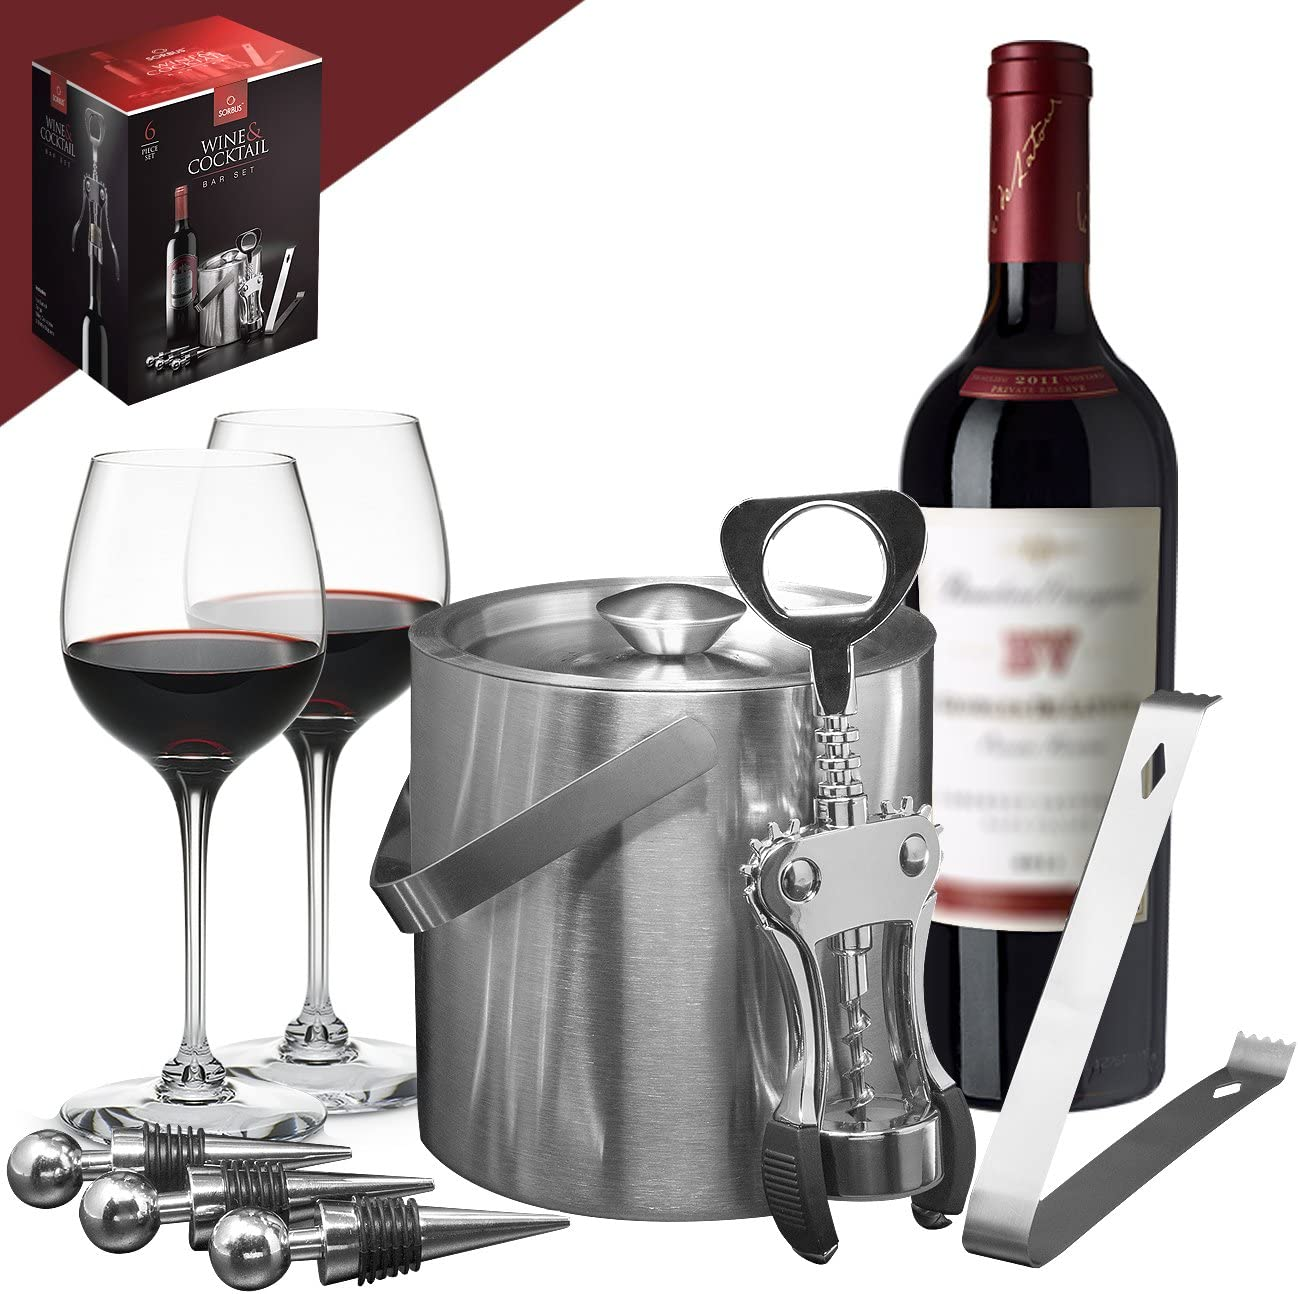 Sorbus Ice Bucket Wine Set — Deluxe 6 Piece Includes: Stainless Steel Double Walled Ice Bucket with Lid, Ice Tong, Bottle Opener, 3 Bottle Stoppers, For Any Occasion Great Holiday Gift